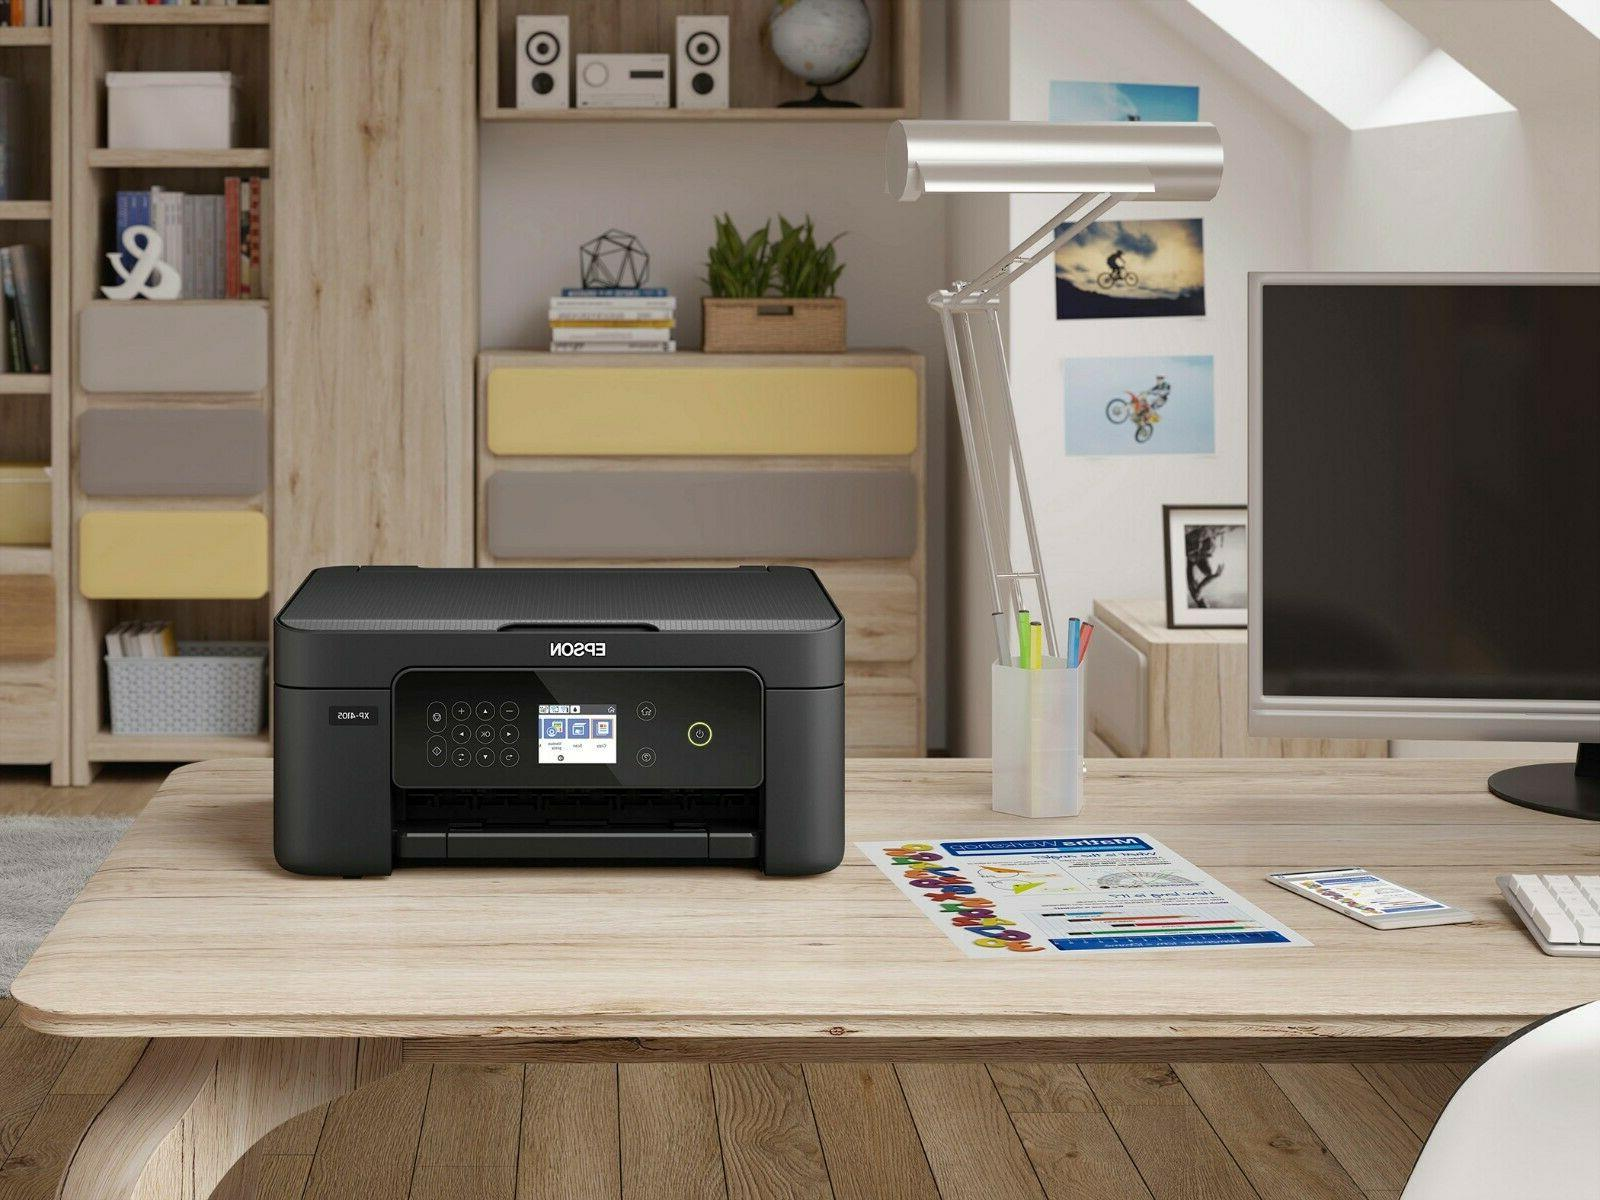 Epson Printer Machine Scanner Office Home Wi-Fi